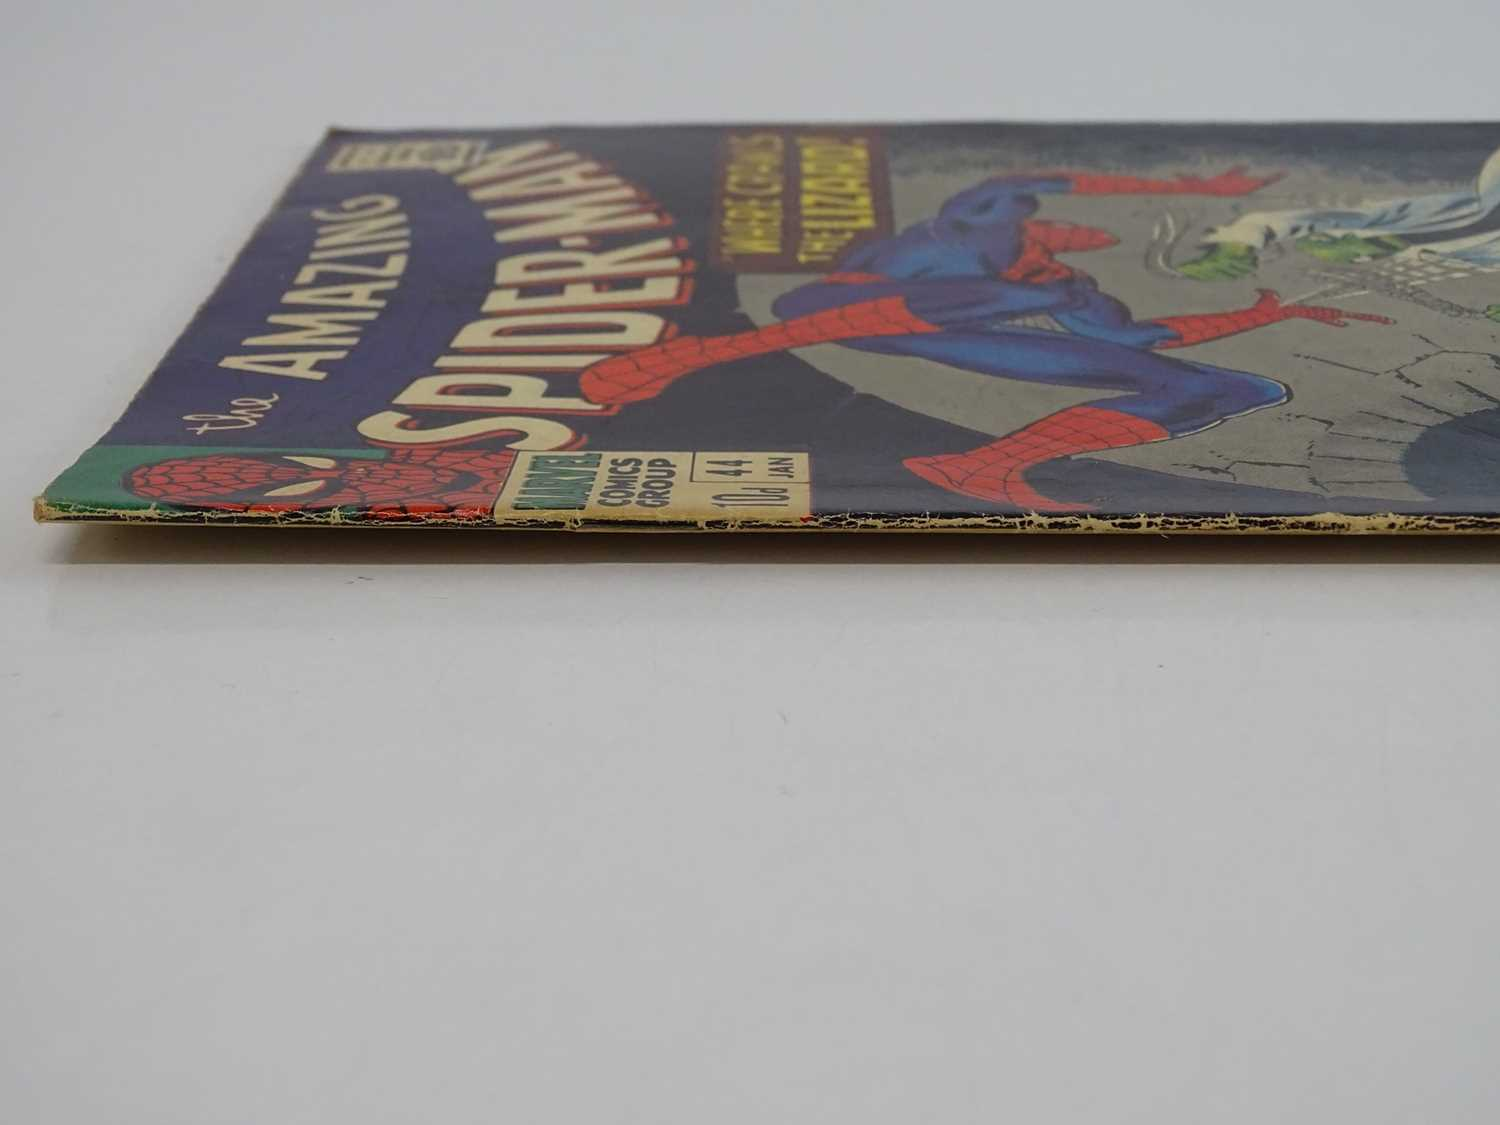 AMAZING SPIDER-MAN #44 - (1966 - MARVEL - UK Price Variant) - Second appearance of the Lizard - John - Image 8 of 9